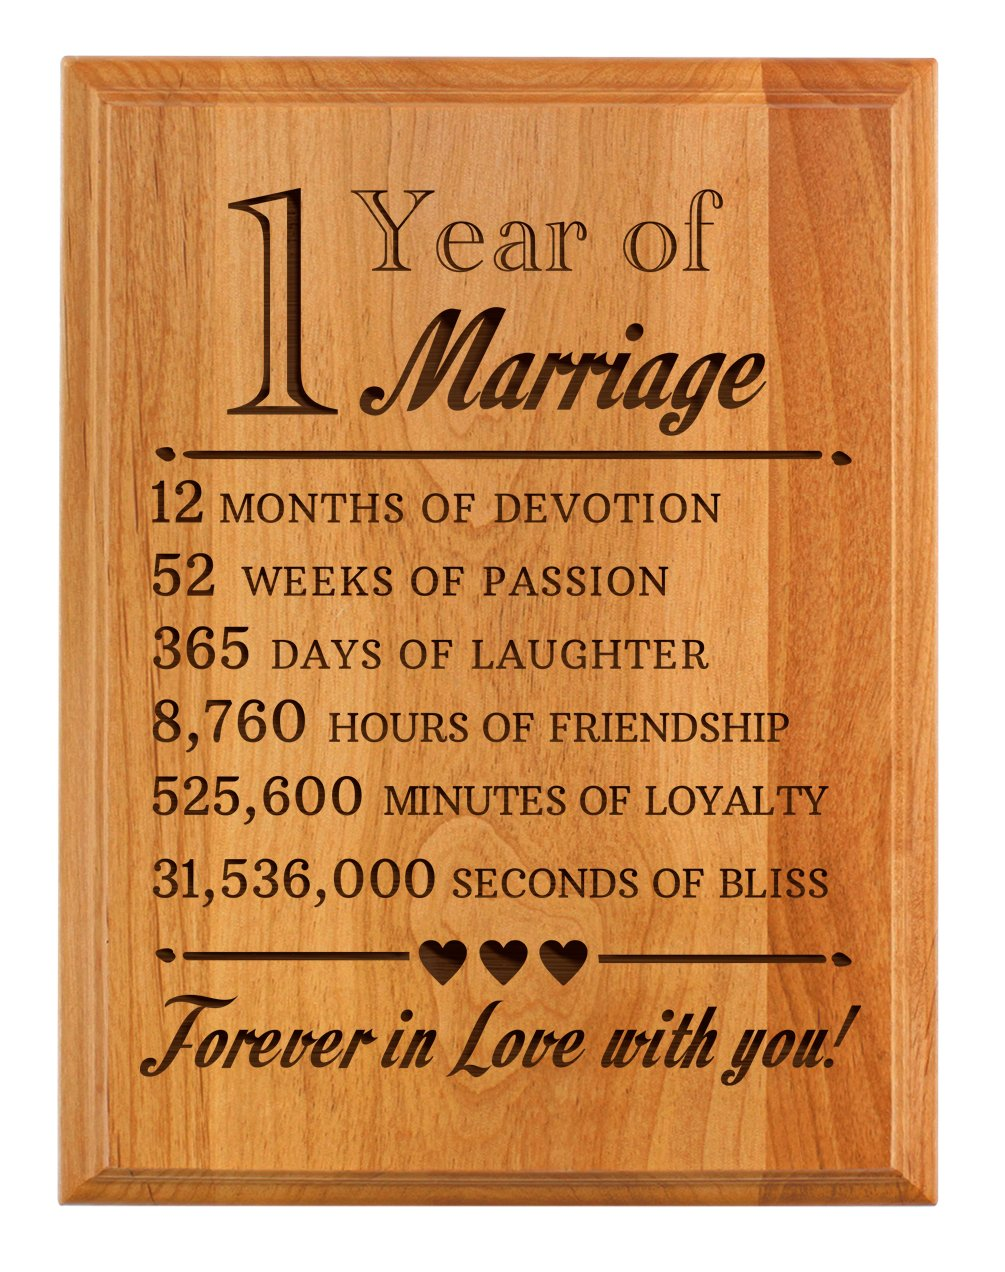 1st Wedding Anniversary Gifts Forever In Love With You 1st Anniversary Gifts 7x9 Oak Wood Engraved Plaque Wood Amazon In Home Kitchen